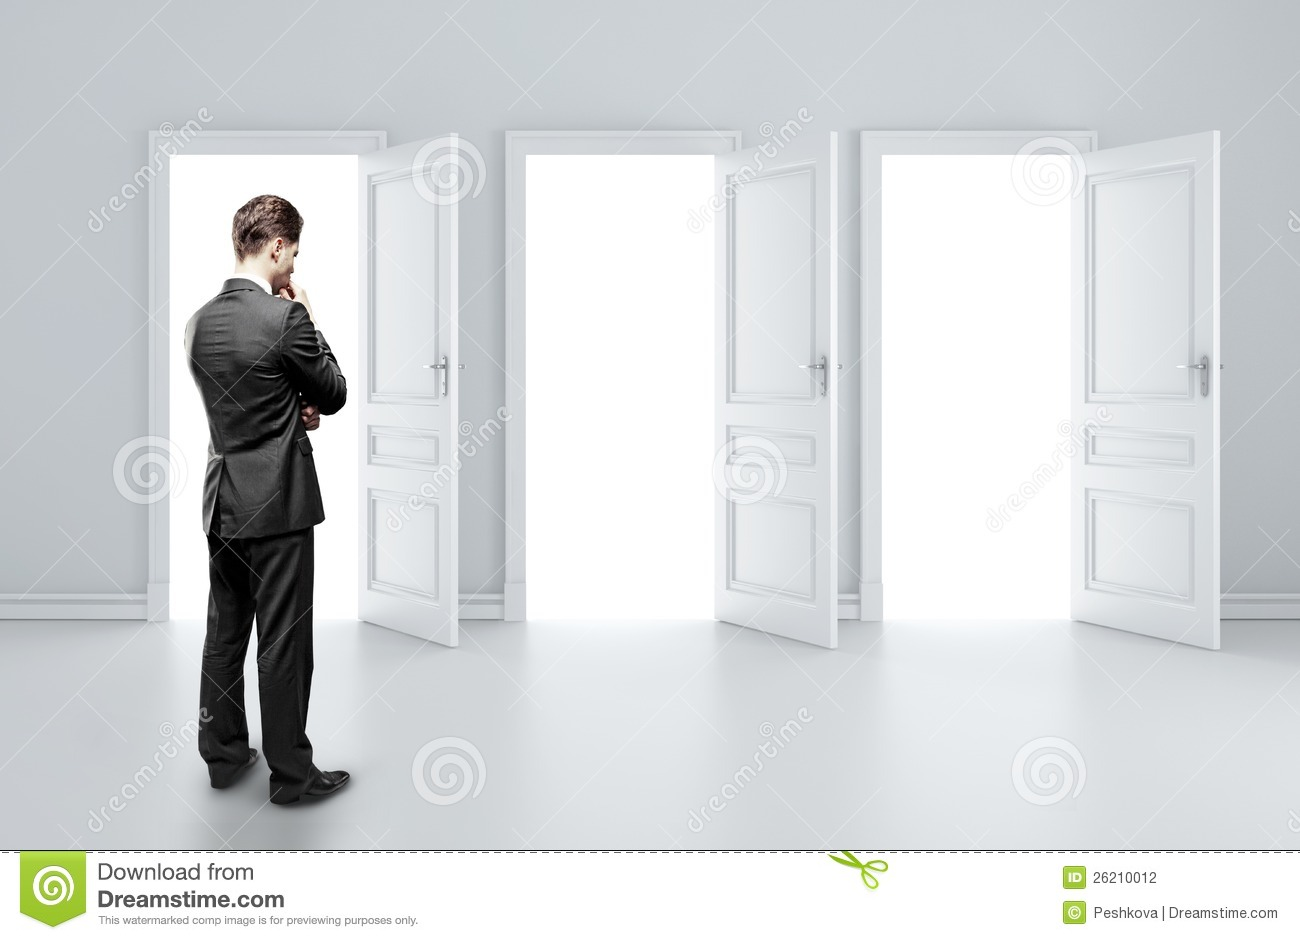 Man choosing door & Man choosing door stock photo. Image of leadership hand - 26210012